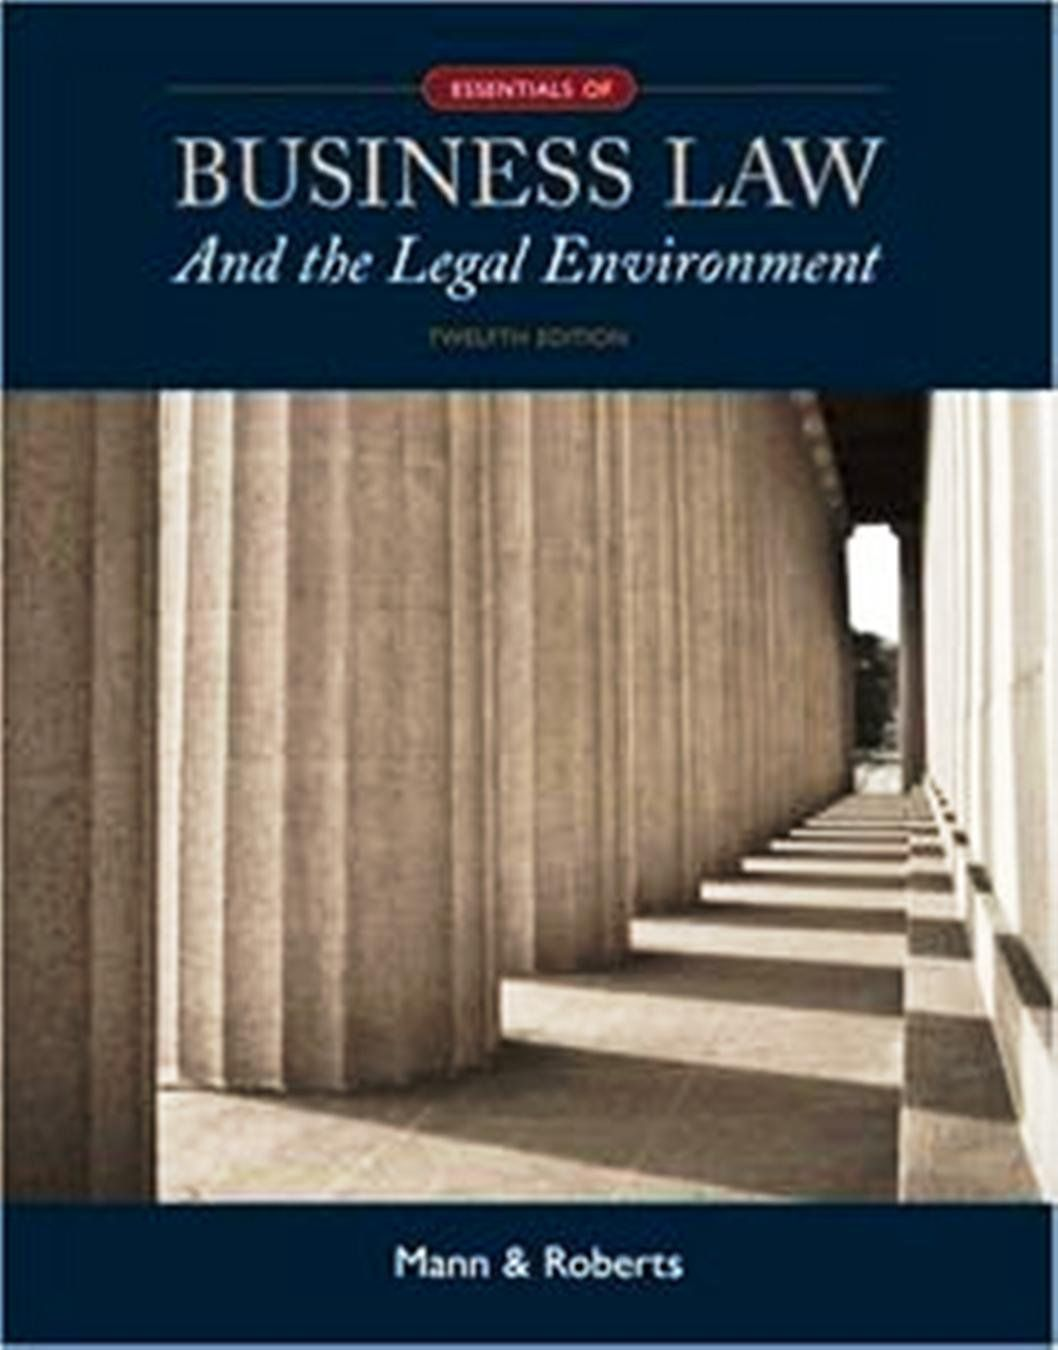 Essentialsofbusinesslawandthelegalenvironment12thedition essentialsofbusinesslawandthelegalenvironment12theditionpdf e book fandeluxe Choice Image